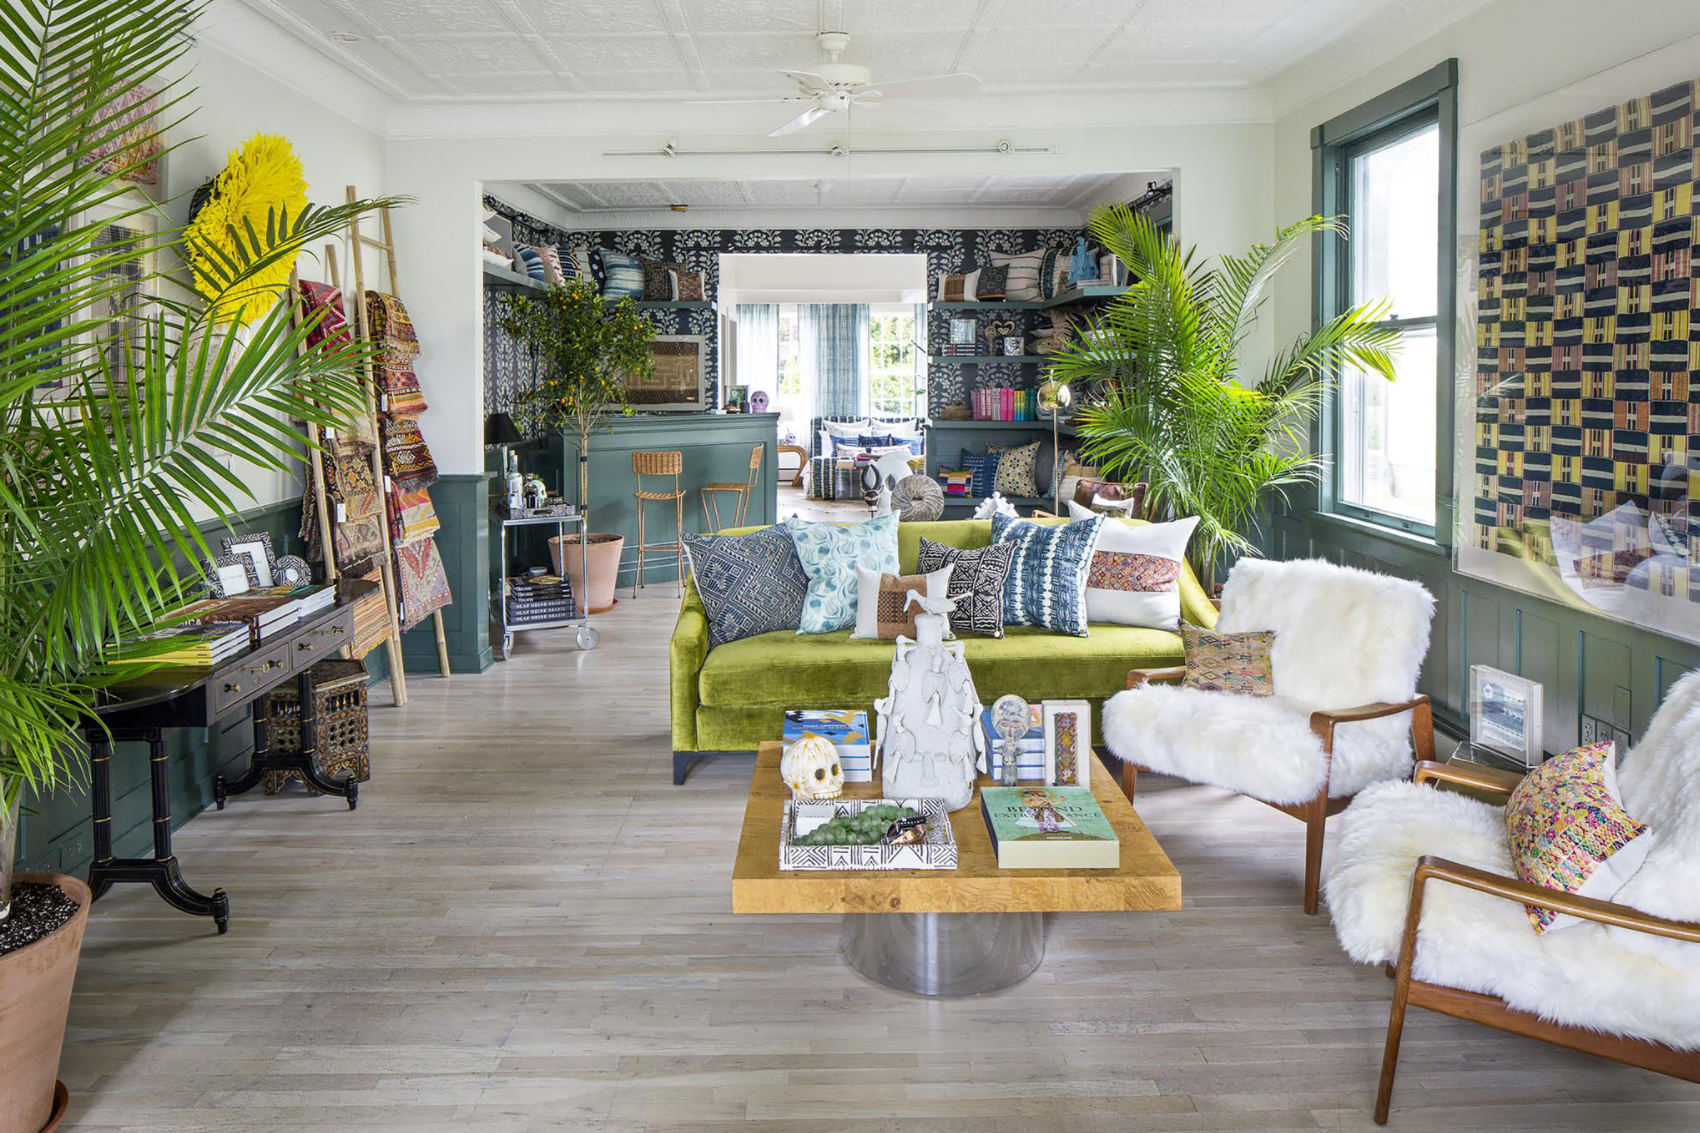 This summer marks the arrival of a newcomer to the Hamptons, though St. Frank is already known and loved by many locals. Founded in San Francisco in 2013 as ...